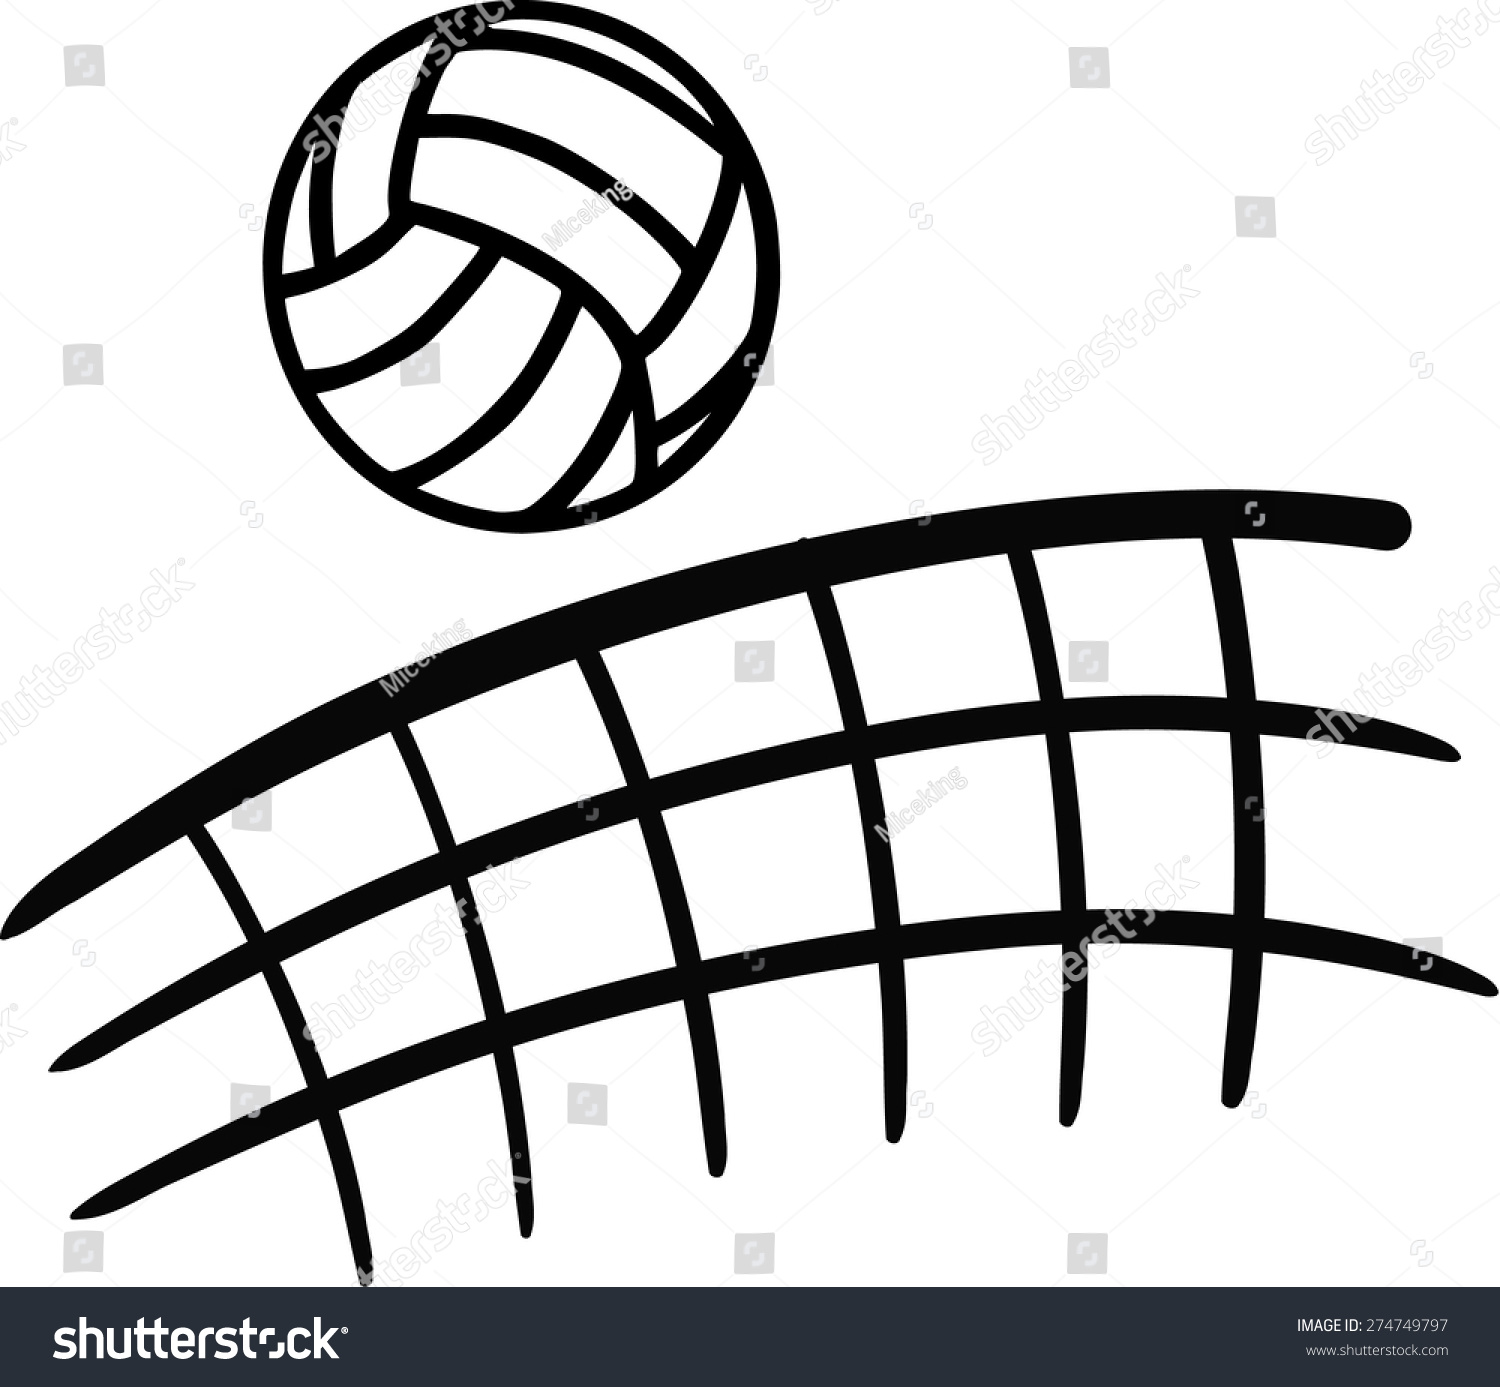 volleyball clipart vector - photo #49